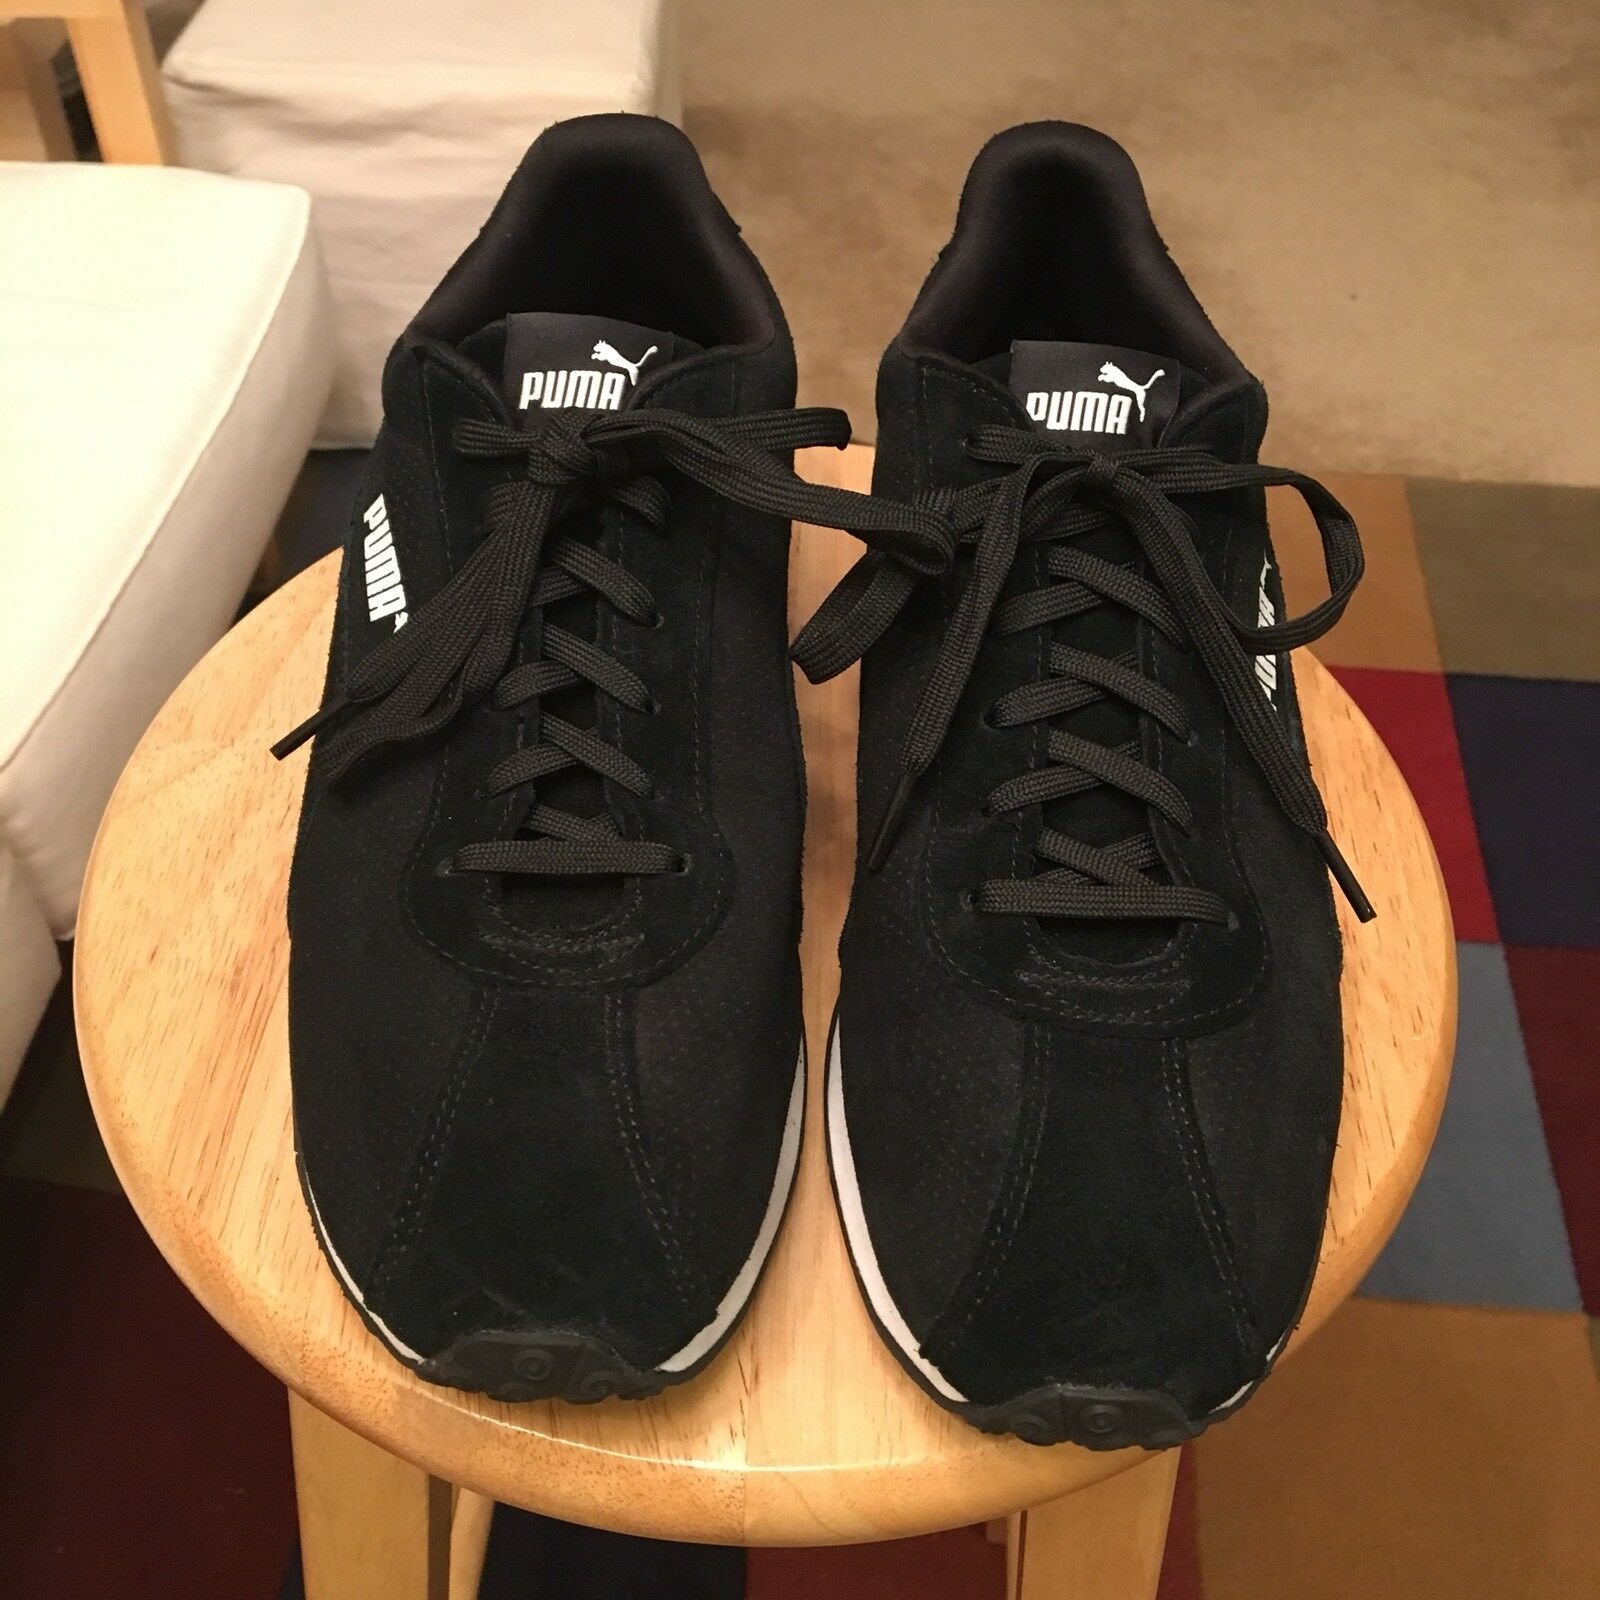 Puma Turin Black/White Trim Men's US12 Suede Athletic Sneakers Shoes